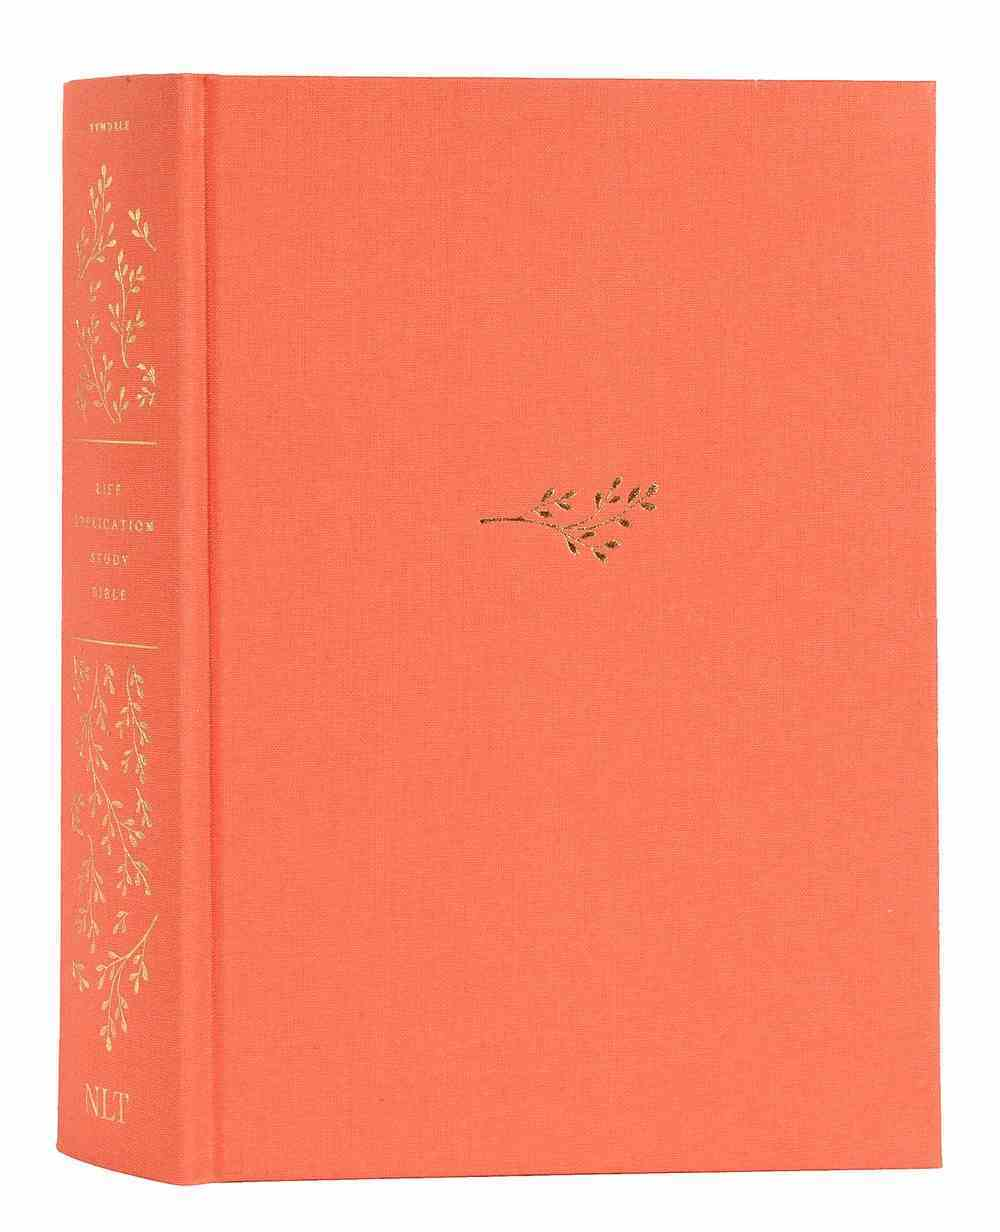 NLT Life Application Study Bible Coral Indexed (Red Letter Edition) (Red Letter Edition) (3rd Edition) Fabric Over Hardback